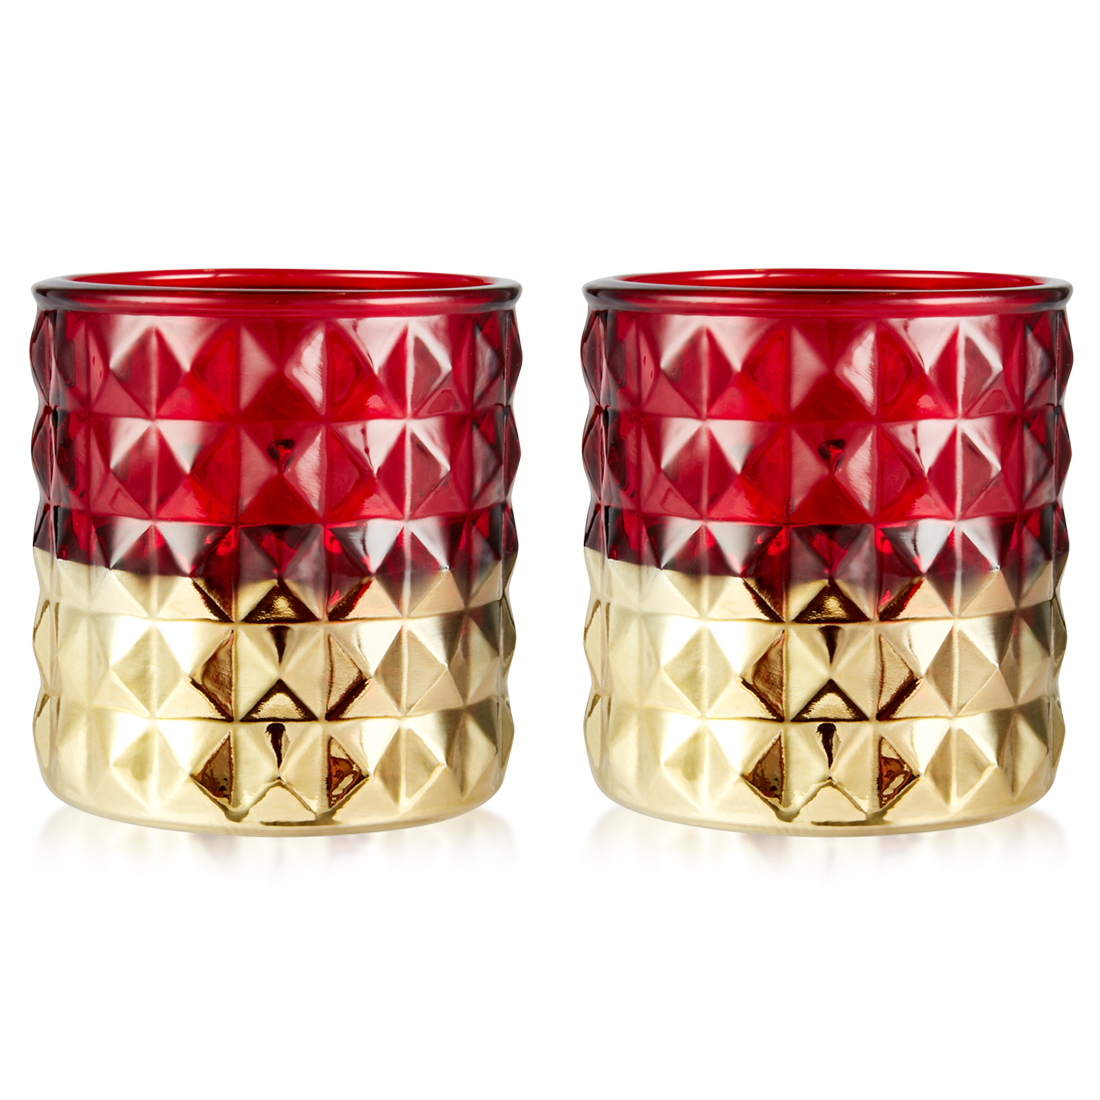 Meira Set Of Two Candle Holder With Geometric Pattern In Red Gold Candle Holders in Red Colour by Living Essence